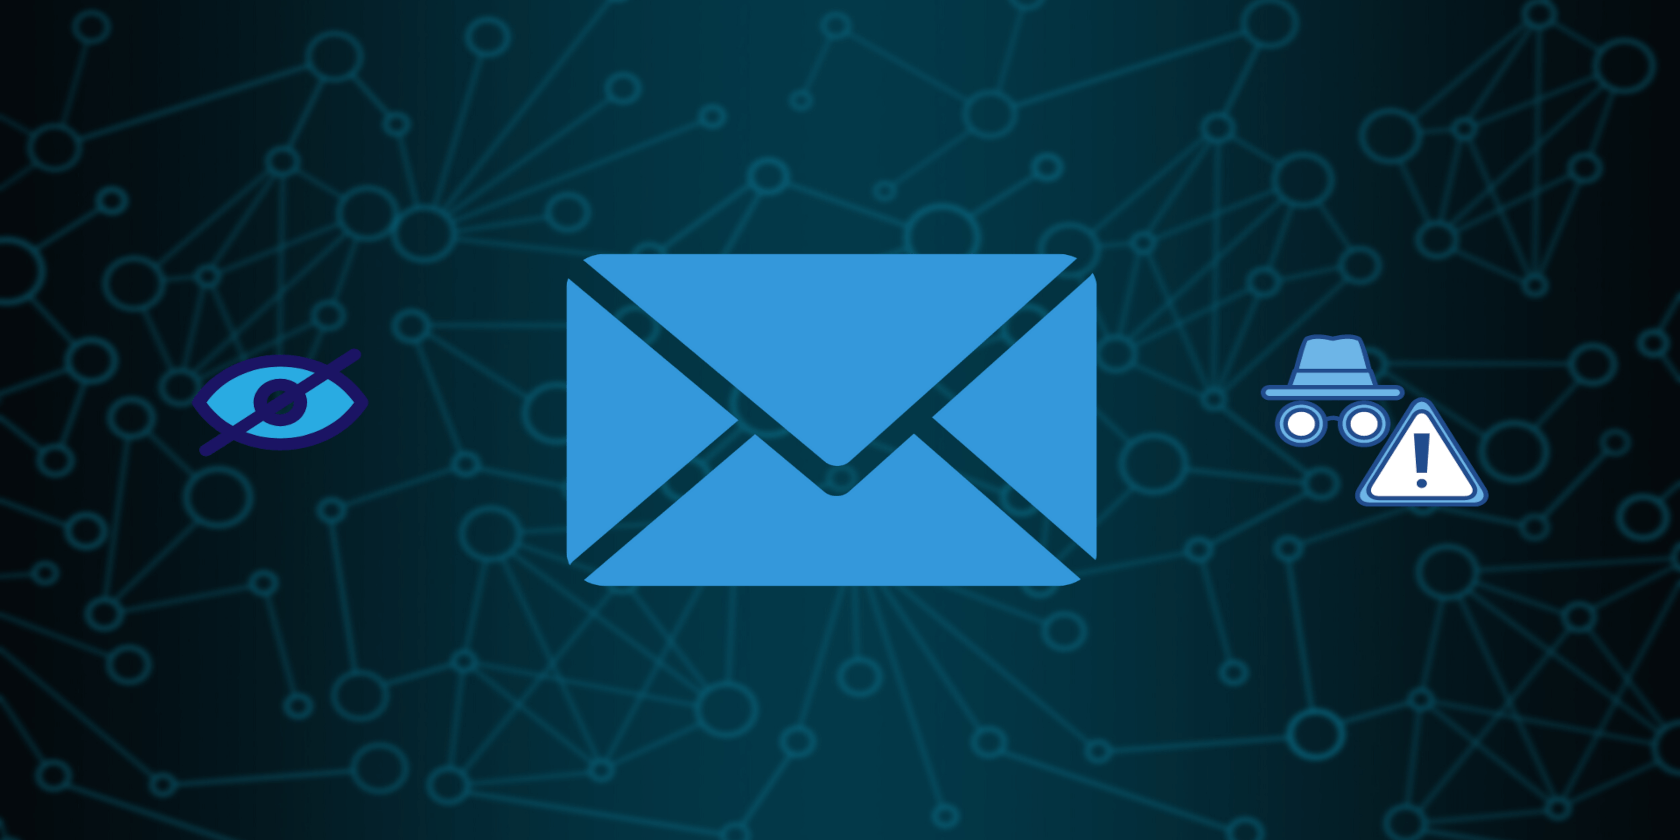 How to Hide Your Real Email Address